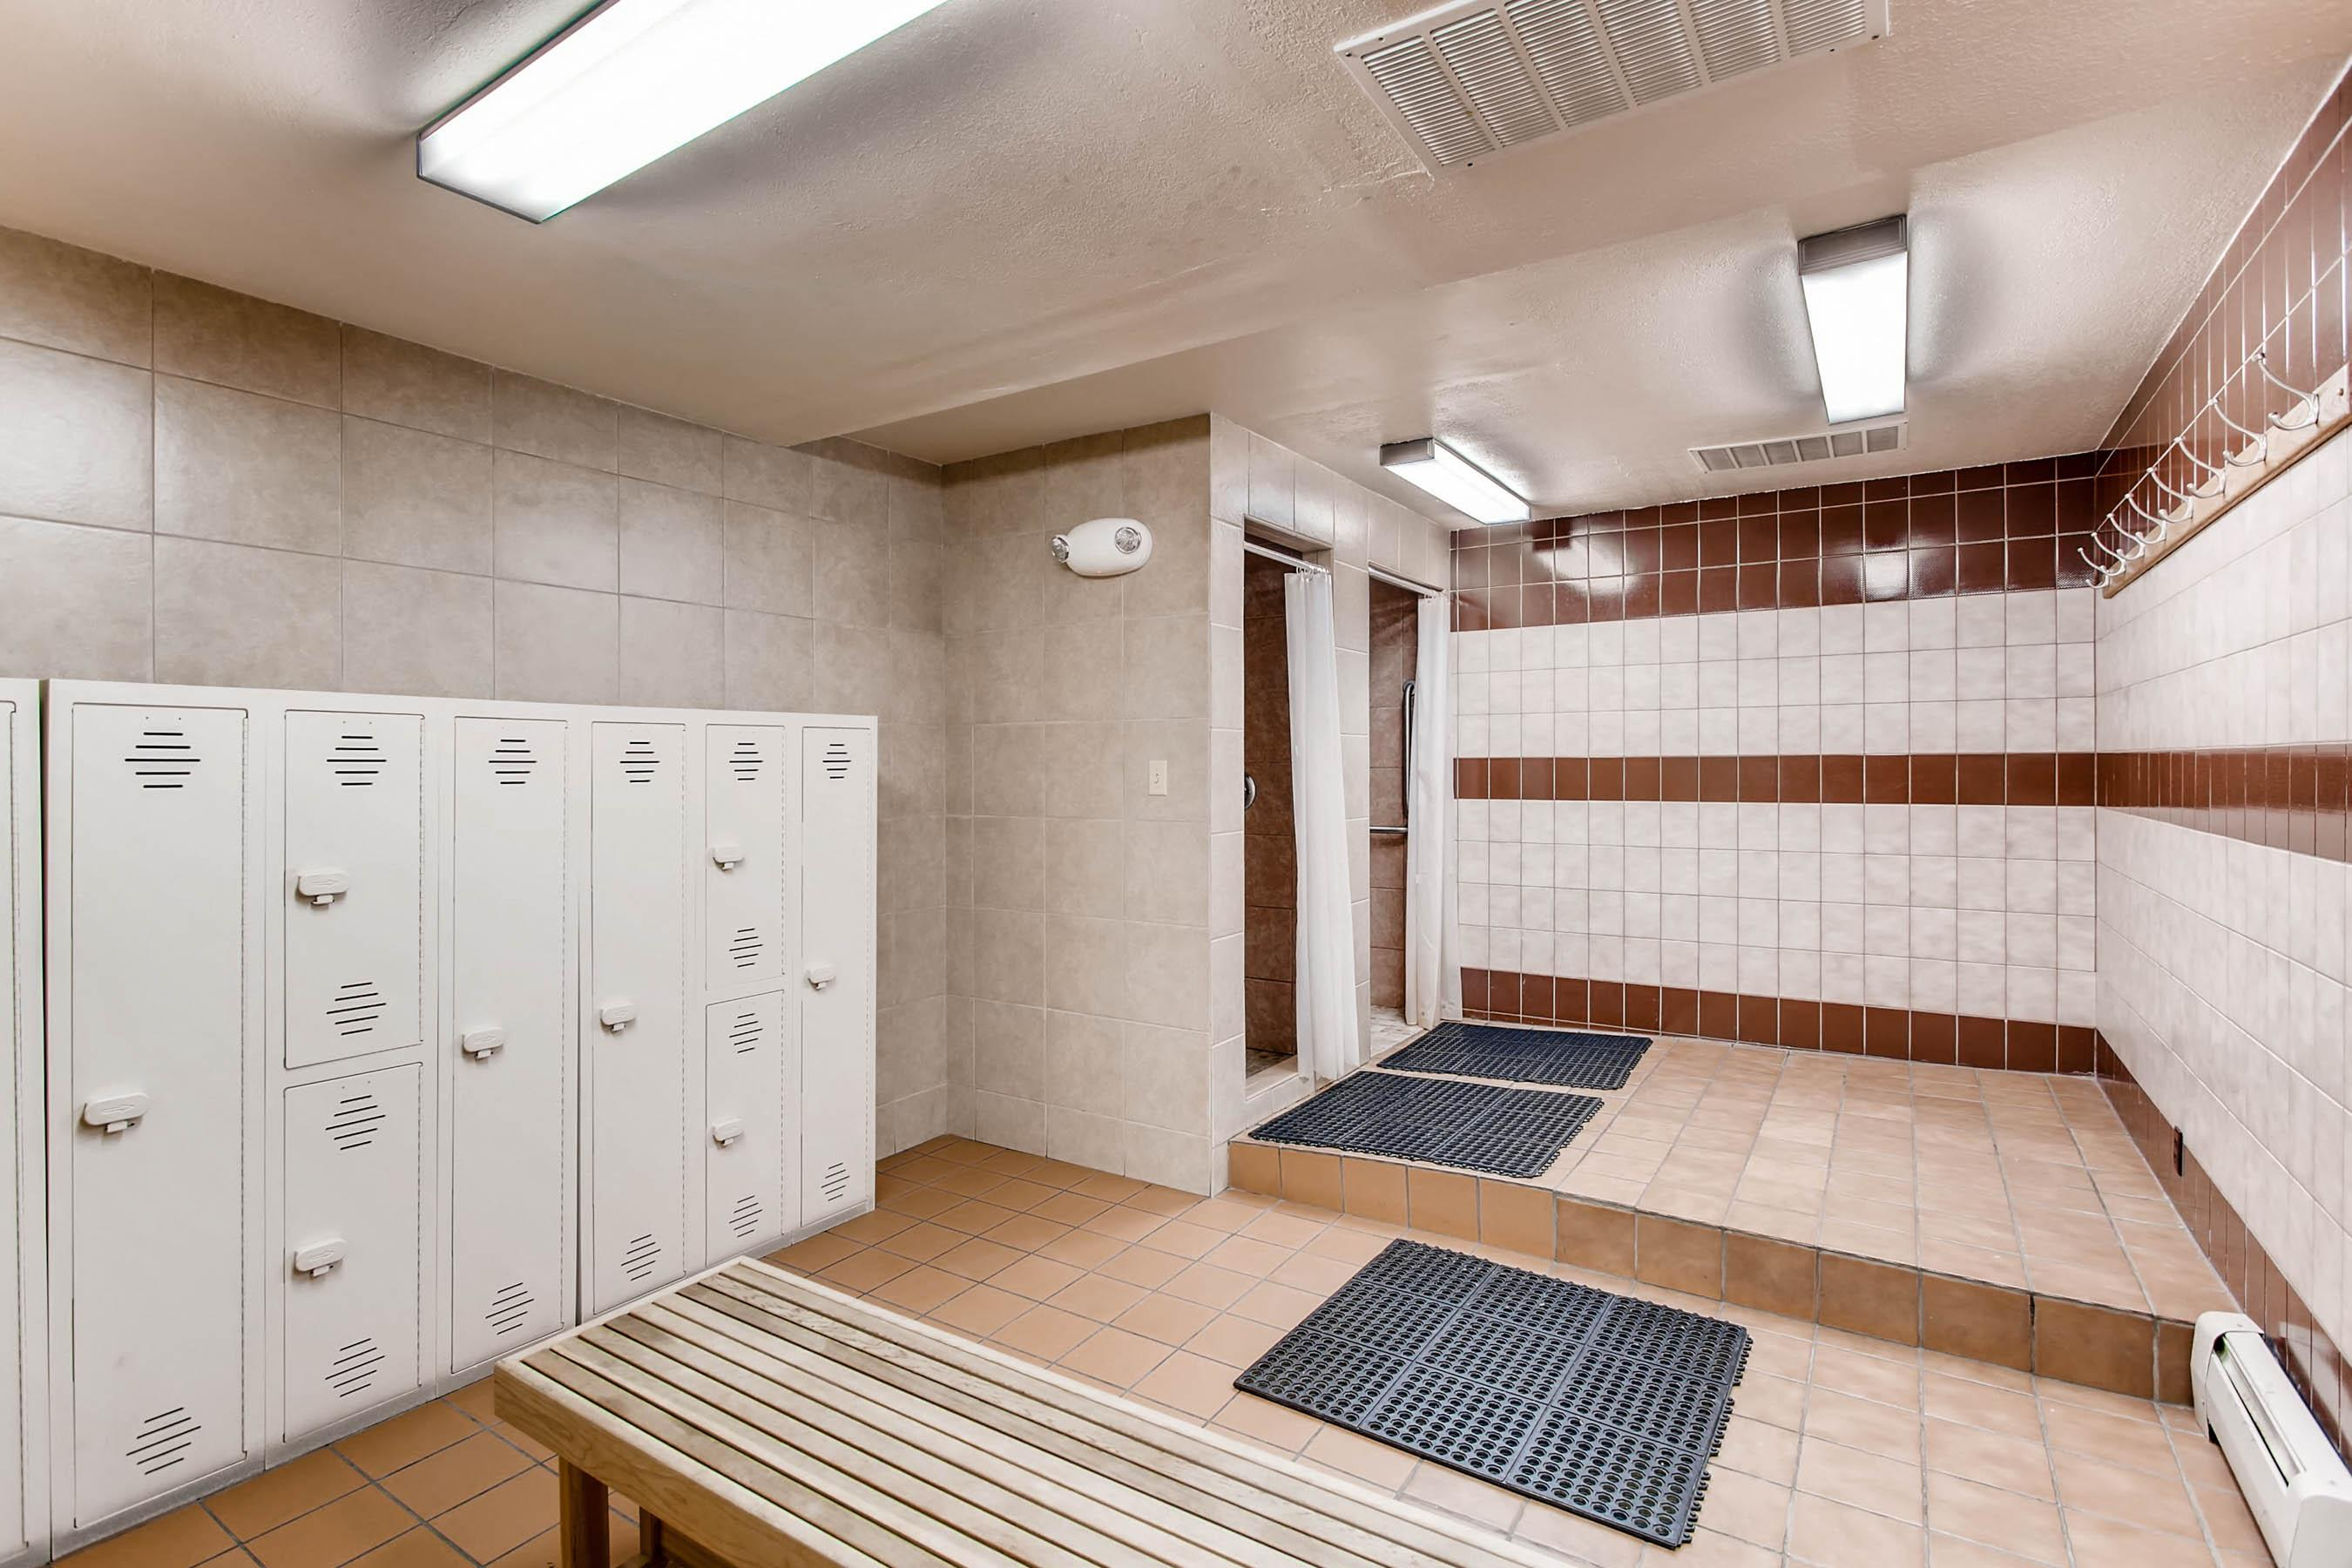 The clubhouse also features a convenient locker room.